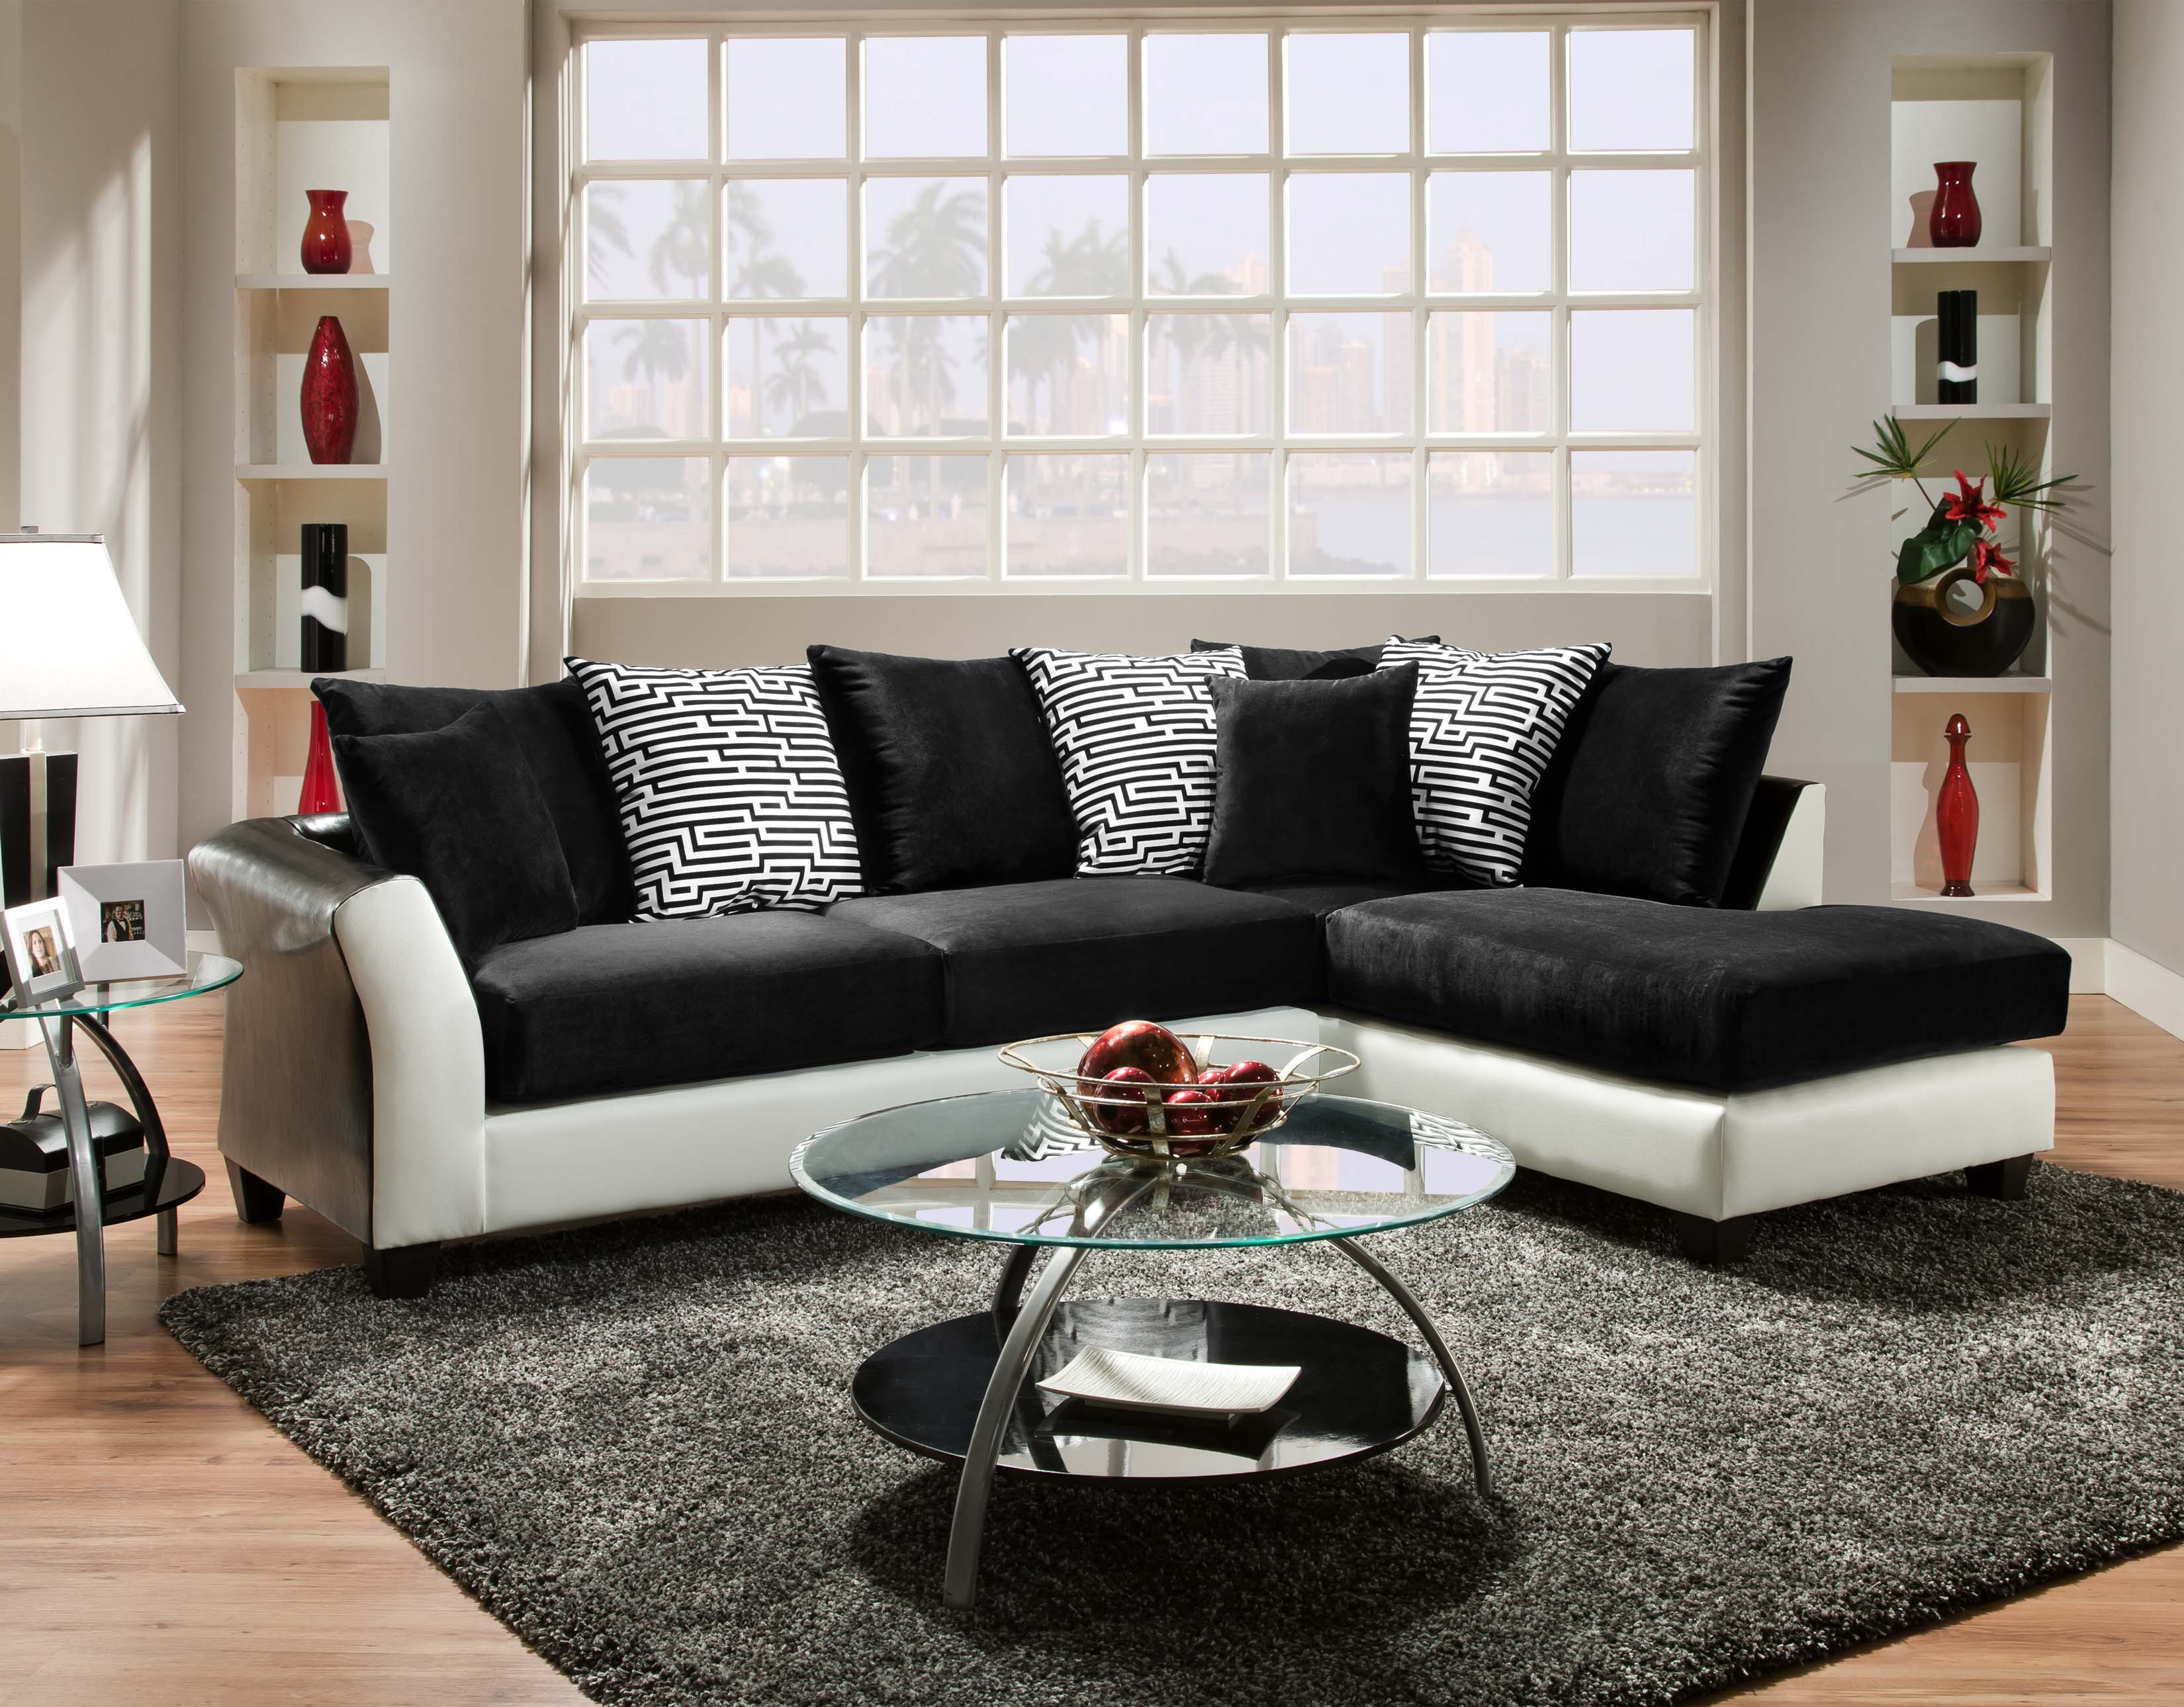 American Freight Furniture Blog Featured Friday ZigZag Sectional